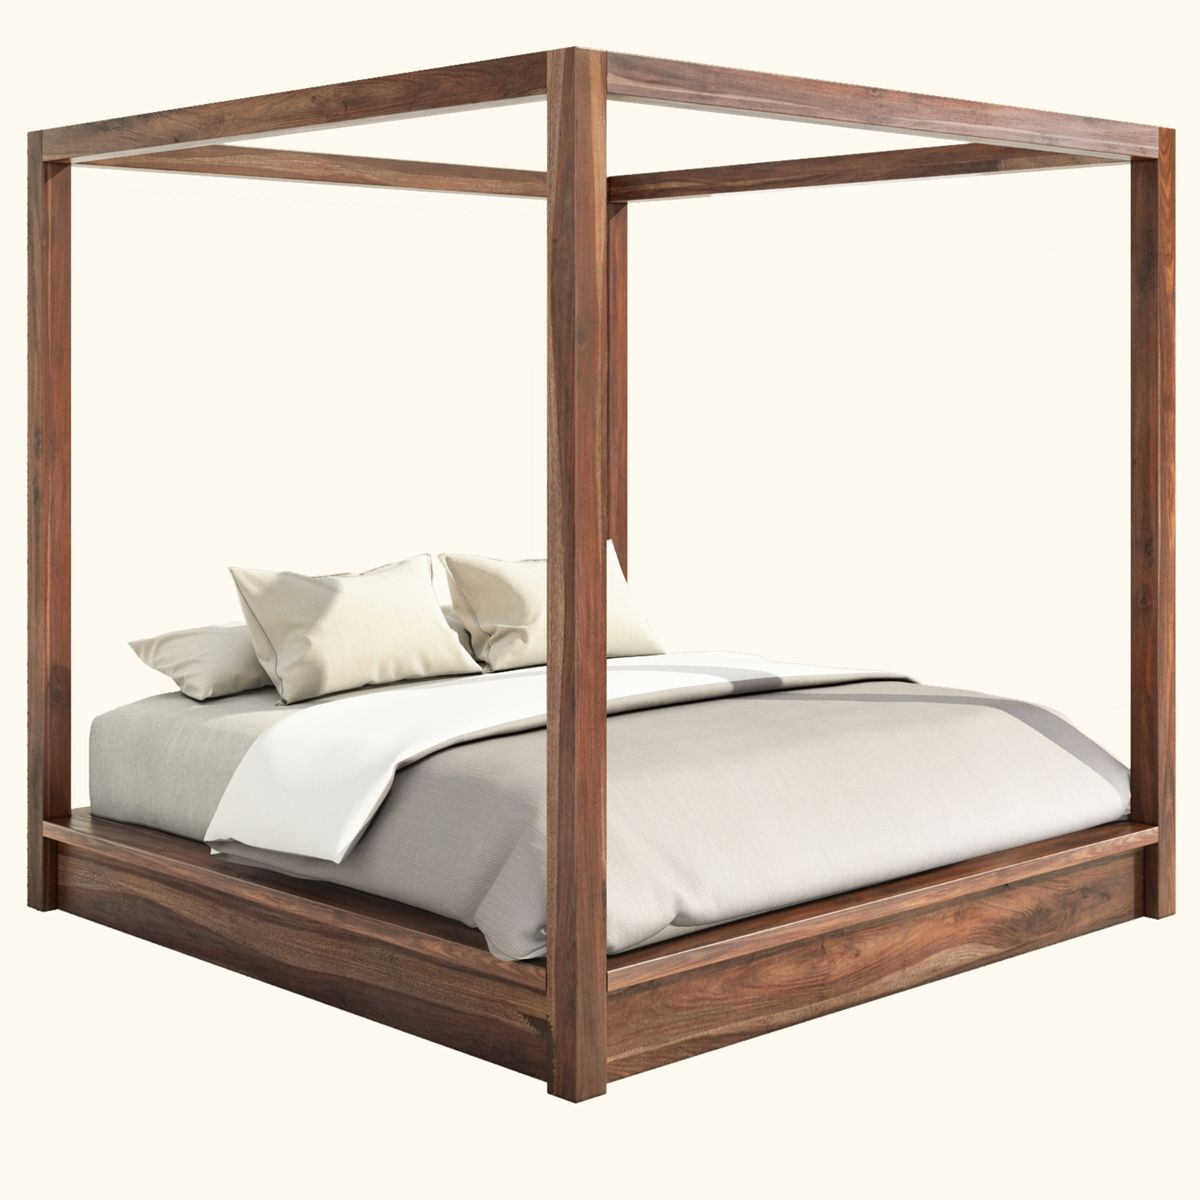 Hampshire Rustic Solid Wood Canopy Bed W Nightstands Platform